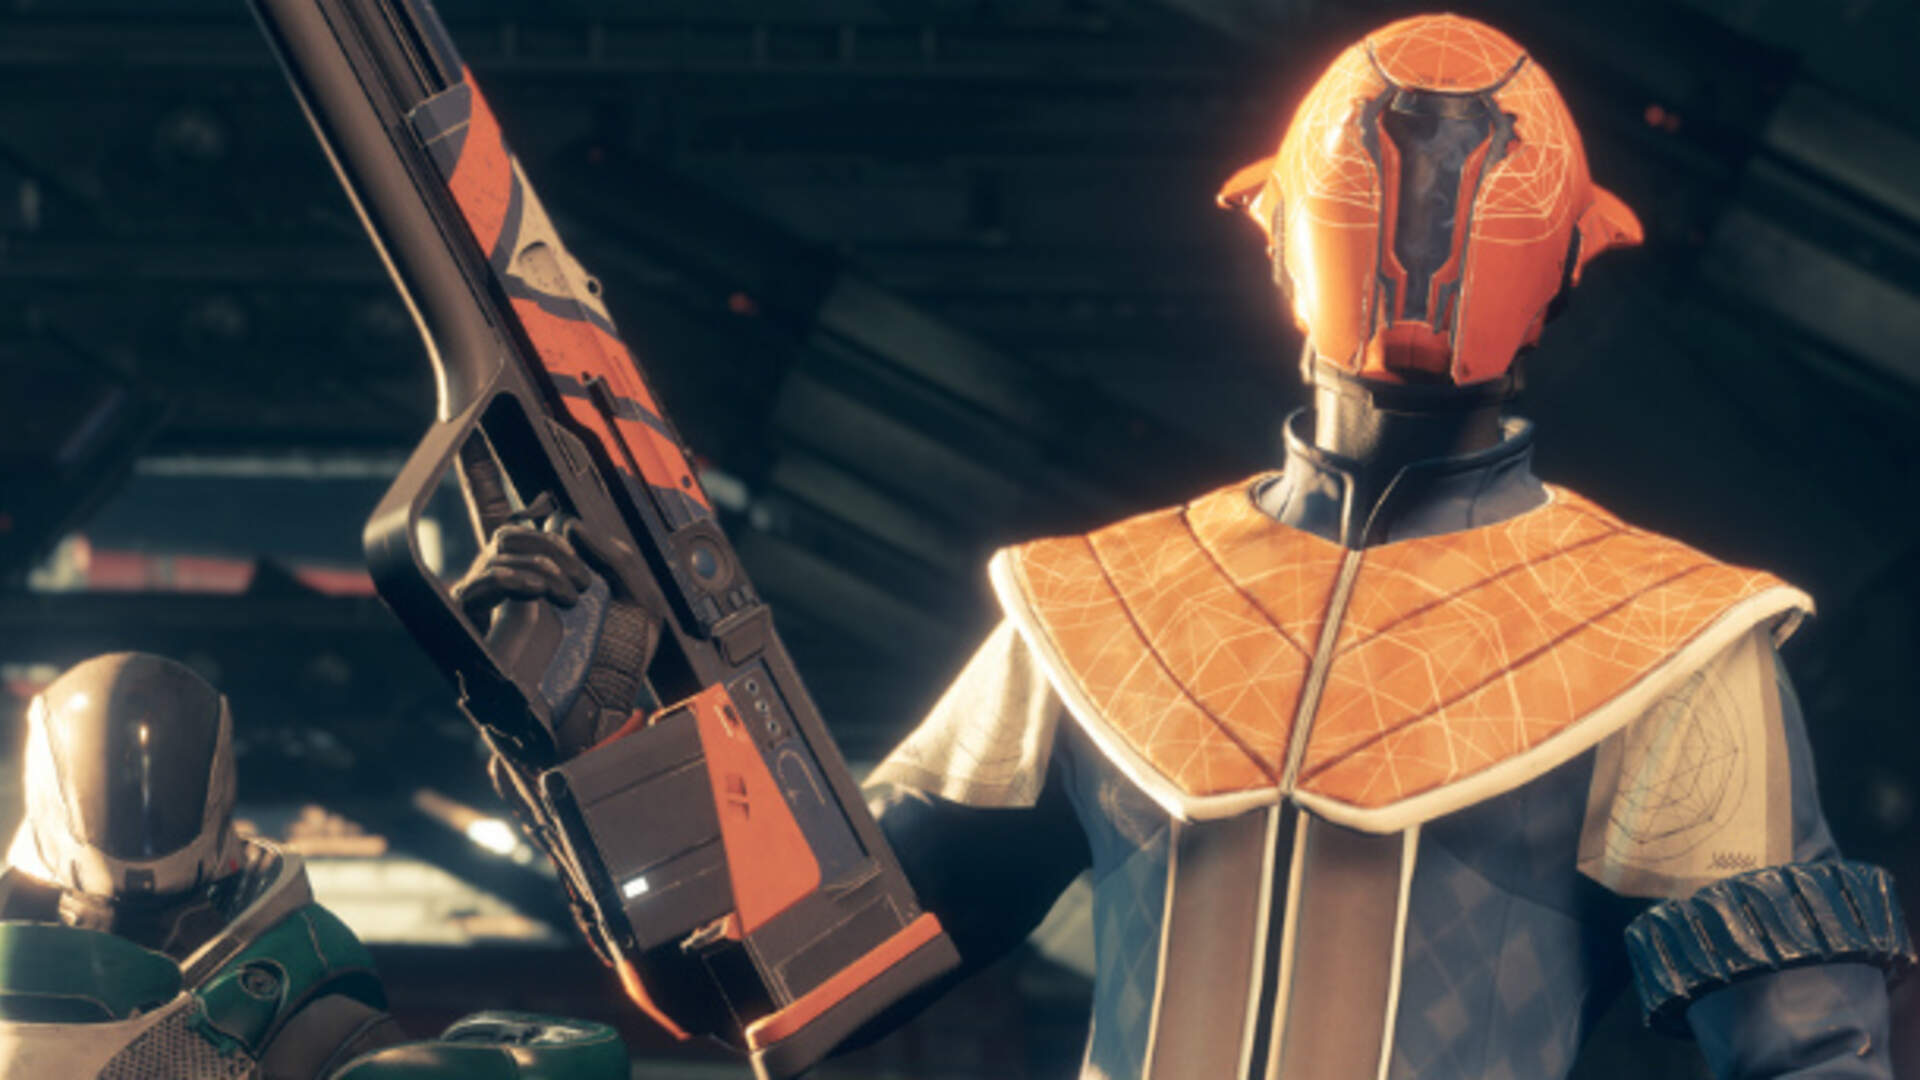 Destiny 2's XP Throttling Courts Controversy, But Bungie Has Bigger Issues to Address